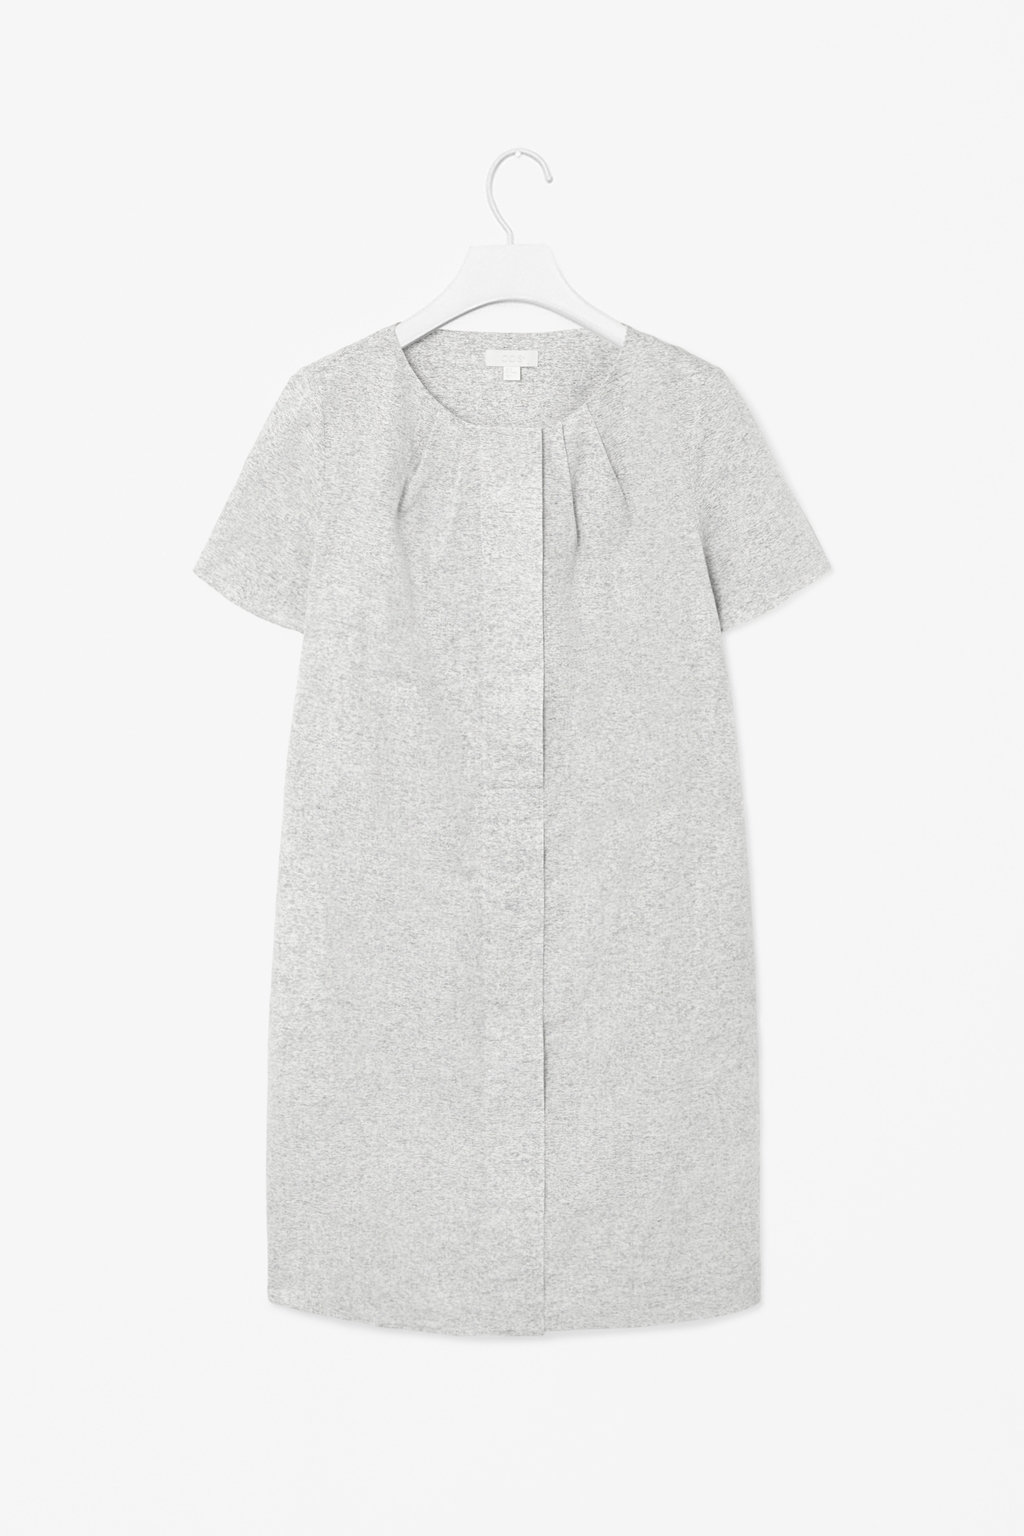 Cotton And Linen Dress - style: t-shirt; neckline: round neck; predominant colour: ivory/cream; secondary colour: mid grey; occasions: casual; length: just above the knee; fit: straight cut; fibres: cotton - mix; sleeve length: short sleeve; sleeve style: standard; texture group: cotton feel fabrics; bust detail: tiers/frills/bulky drapes/pleats; pattern type: fabric; pattern size: standard; pattern: patterned/print; season: s/s 2014